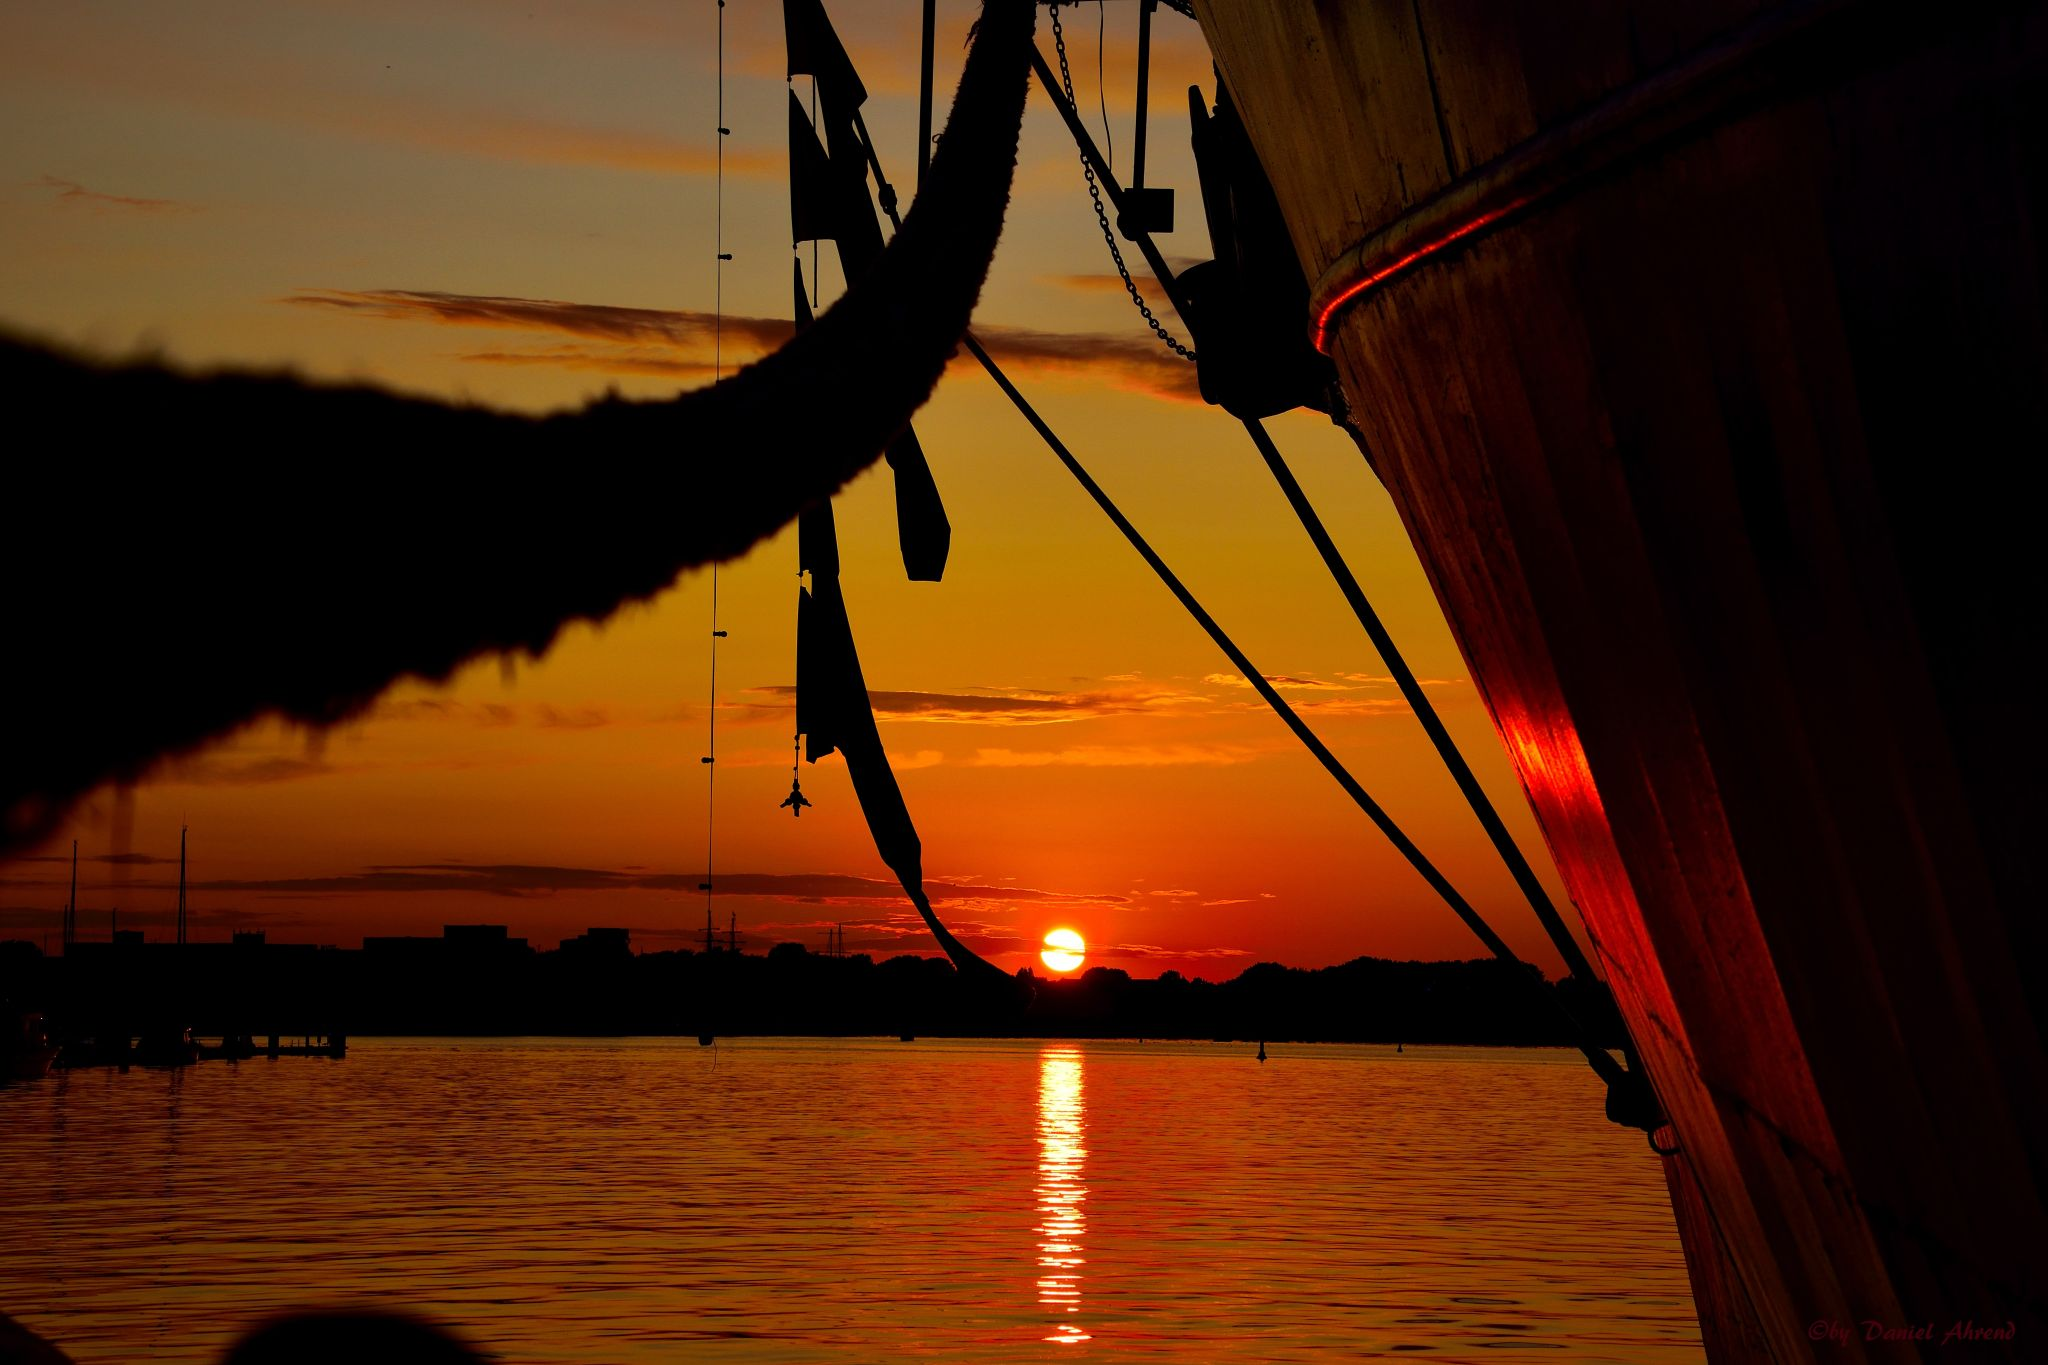 Sunset in Rostock city harbor., Germany